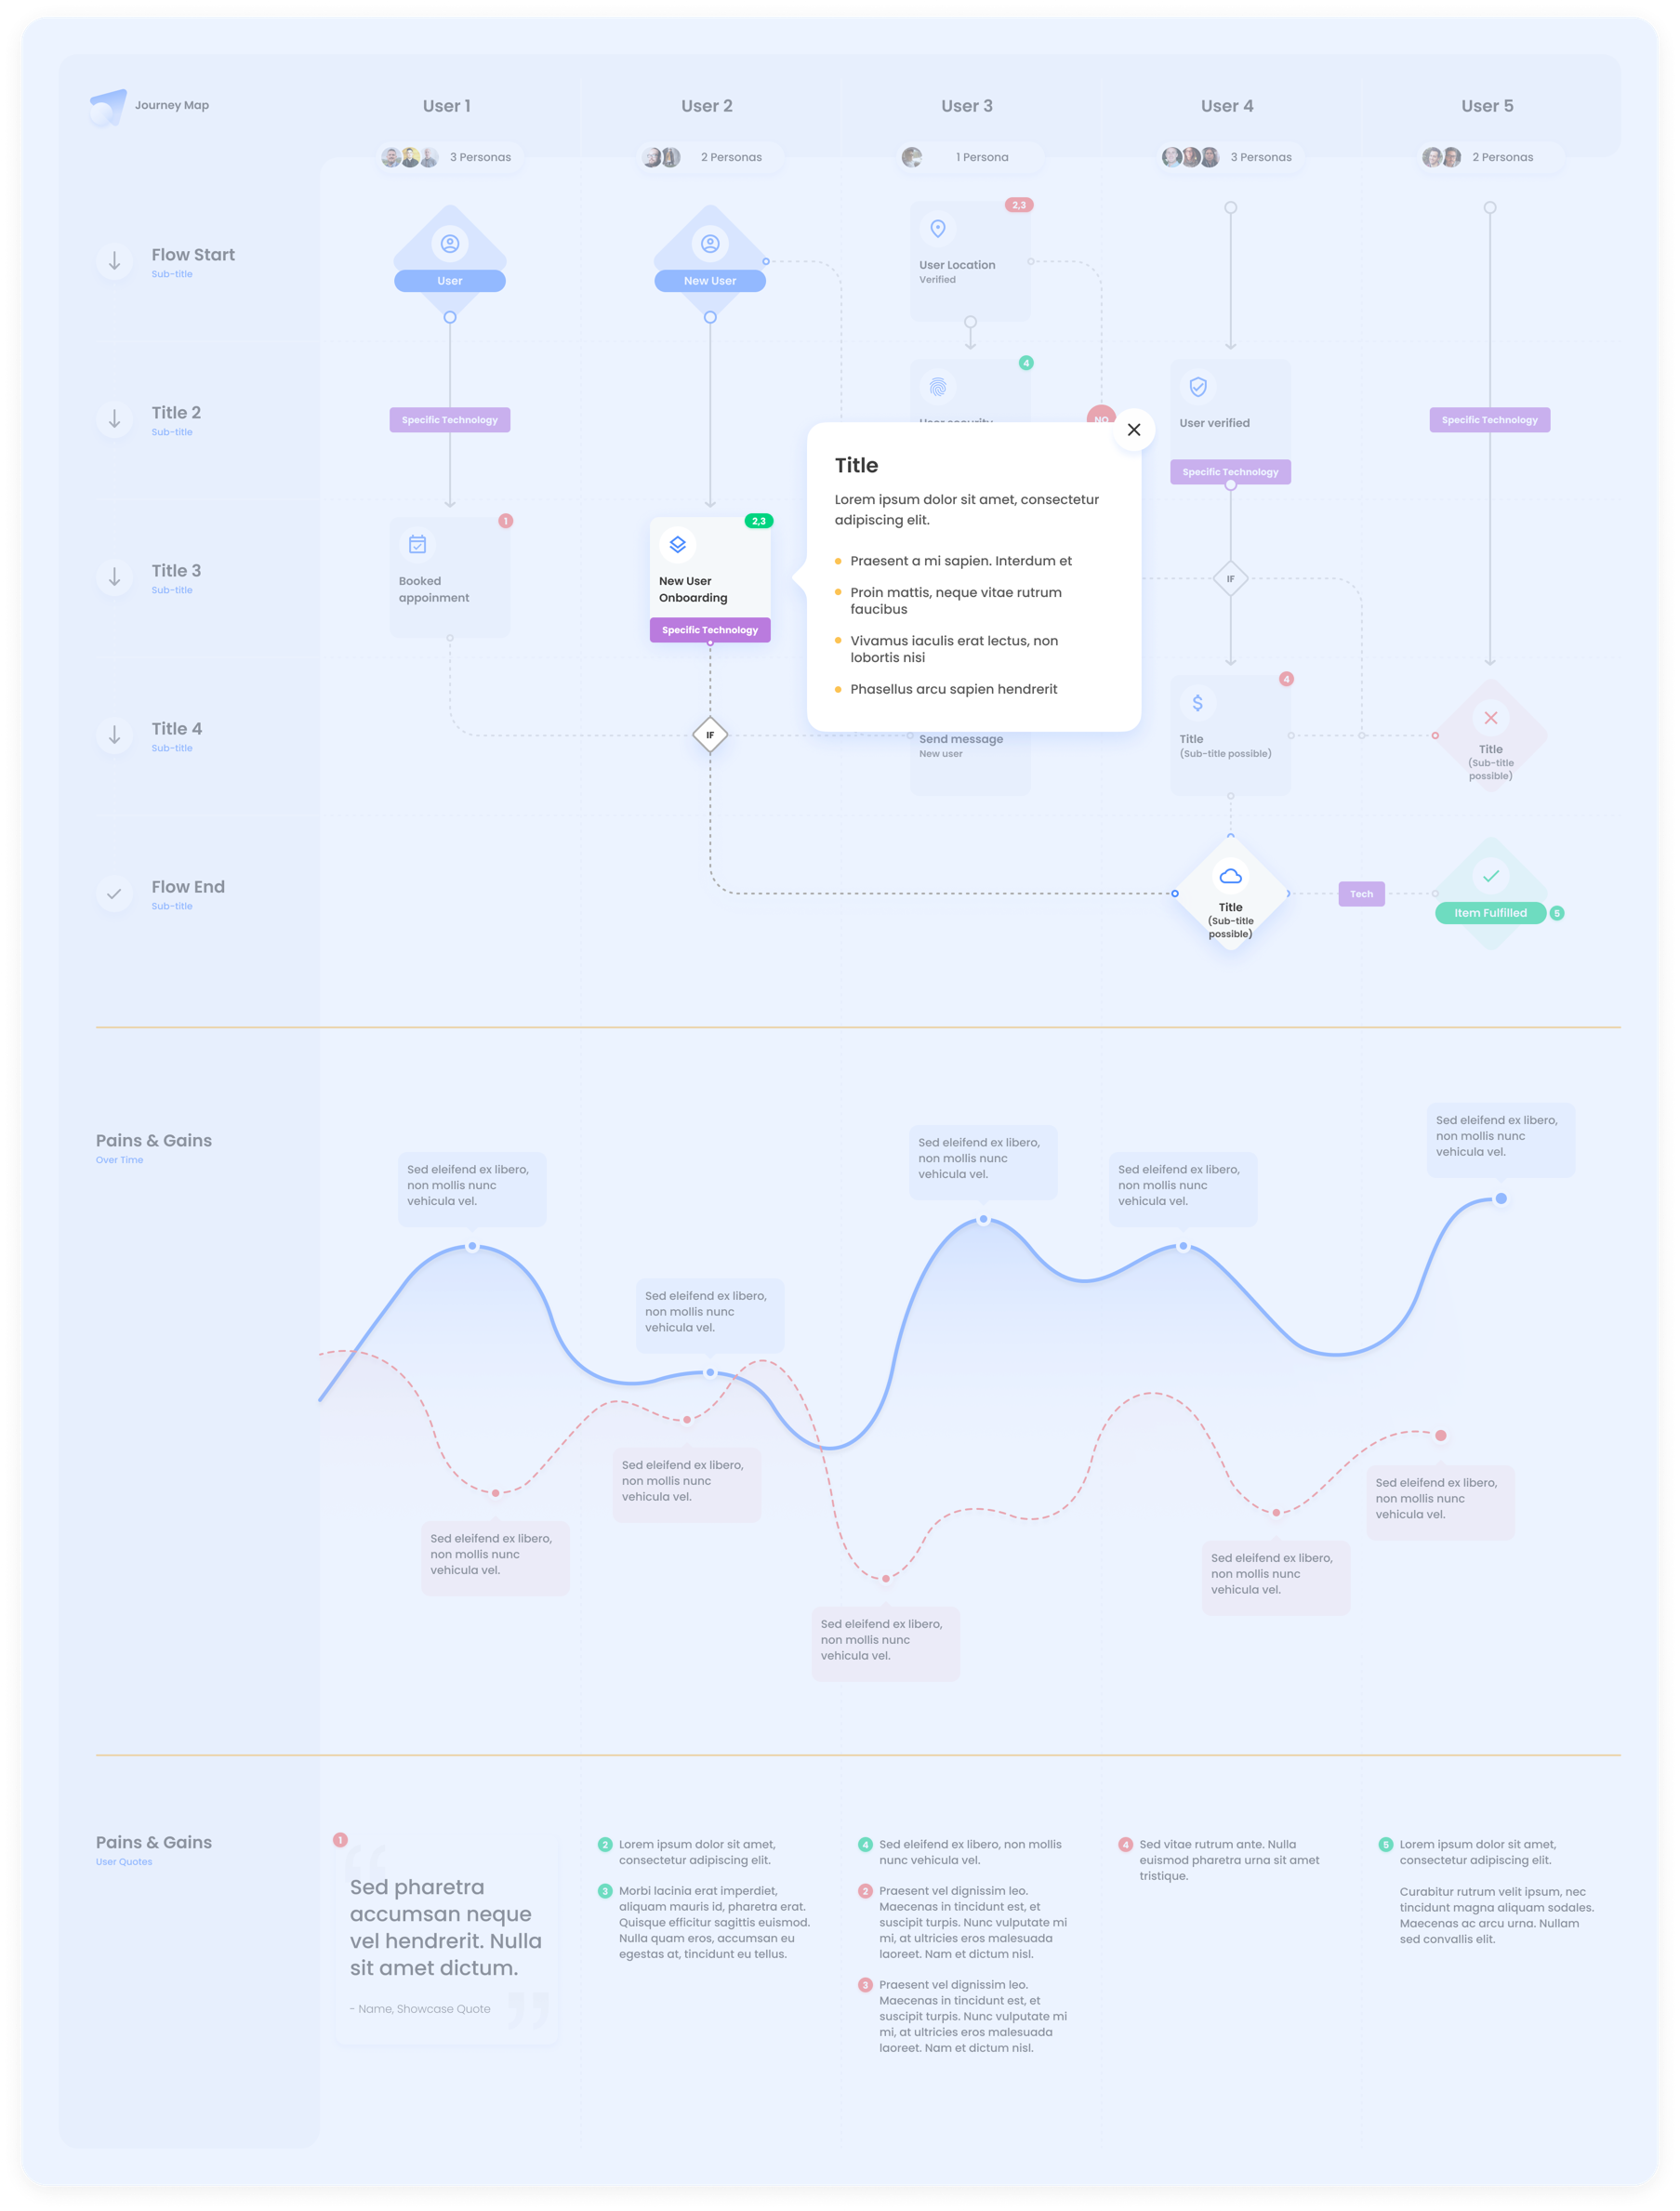 Interactive Journey Map for Figma - Meet the Interactive Journey Map, a new take on journey mapping using Figma's prototyping tools. Expandable mini user personas and clickable user-flow flow elements enable you to go deeper into the details. Duplicate the file and start using it now for free.